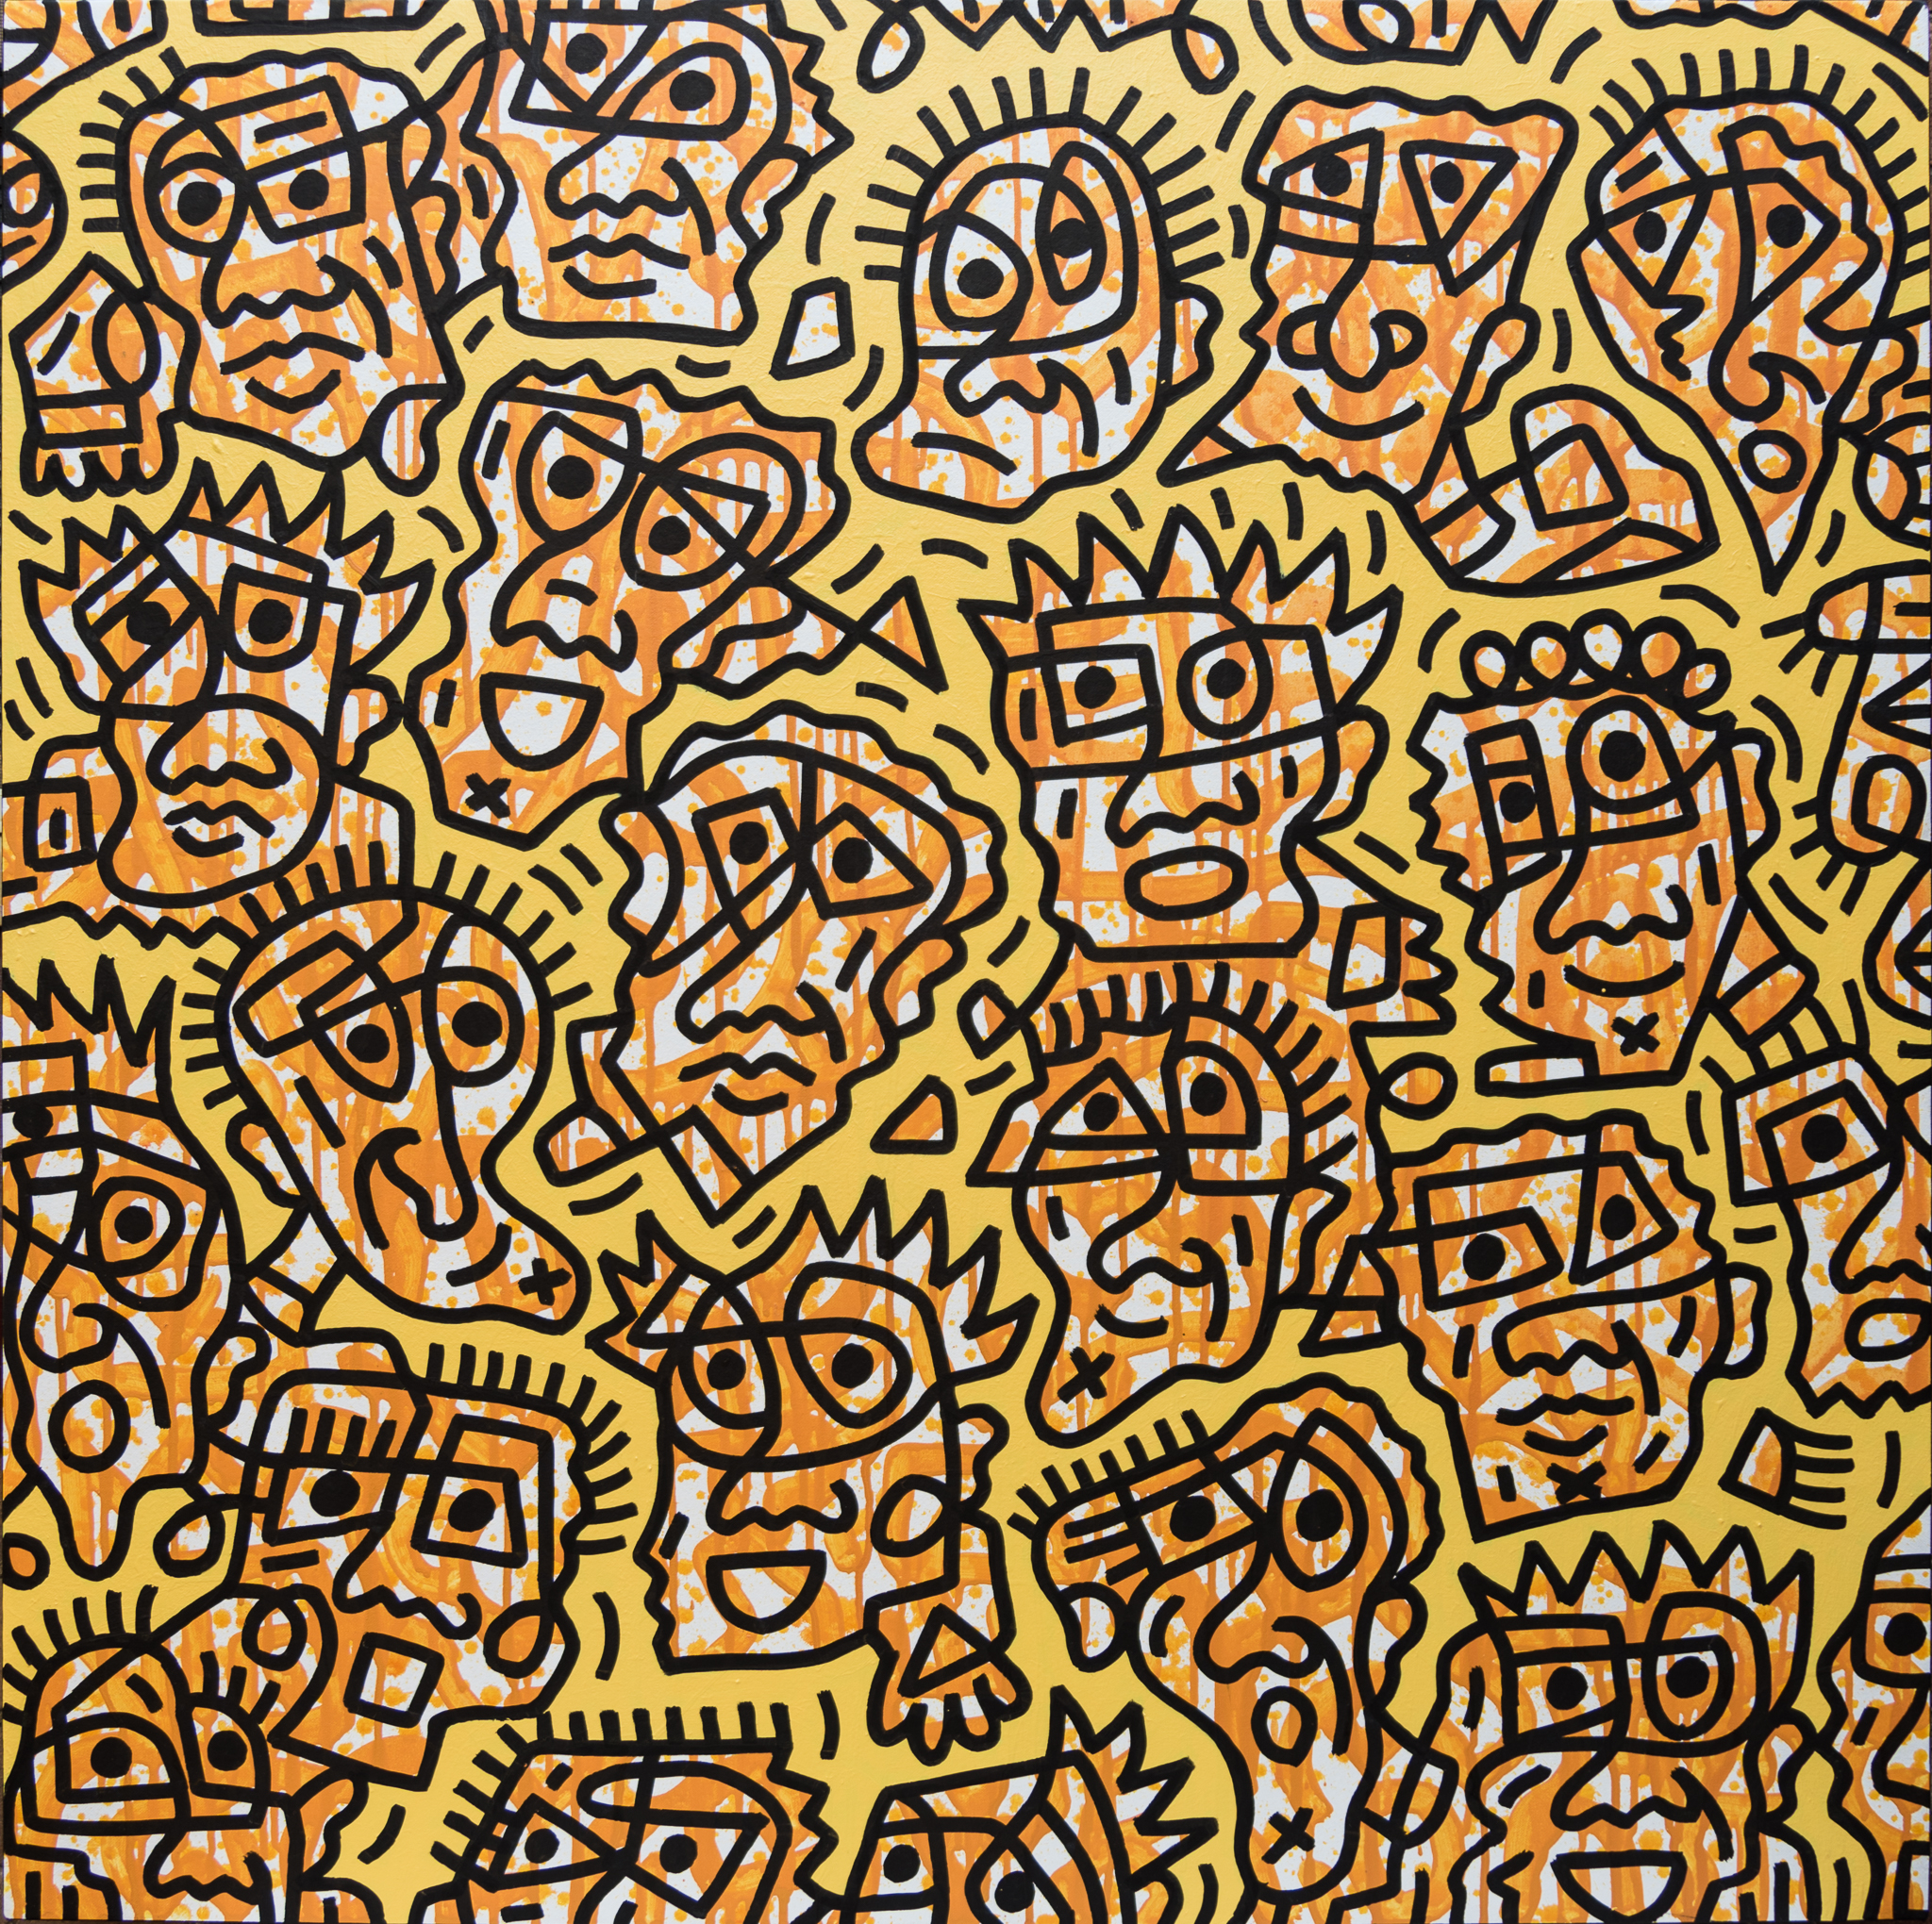 Yellow Facial Forms #1, enamel on canvas, 100x100cm, SOLD